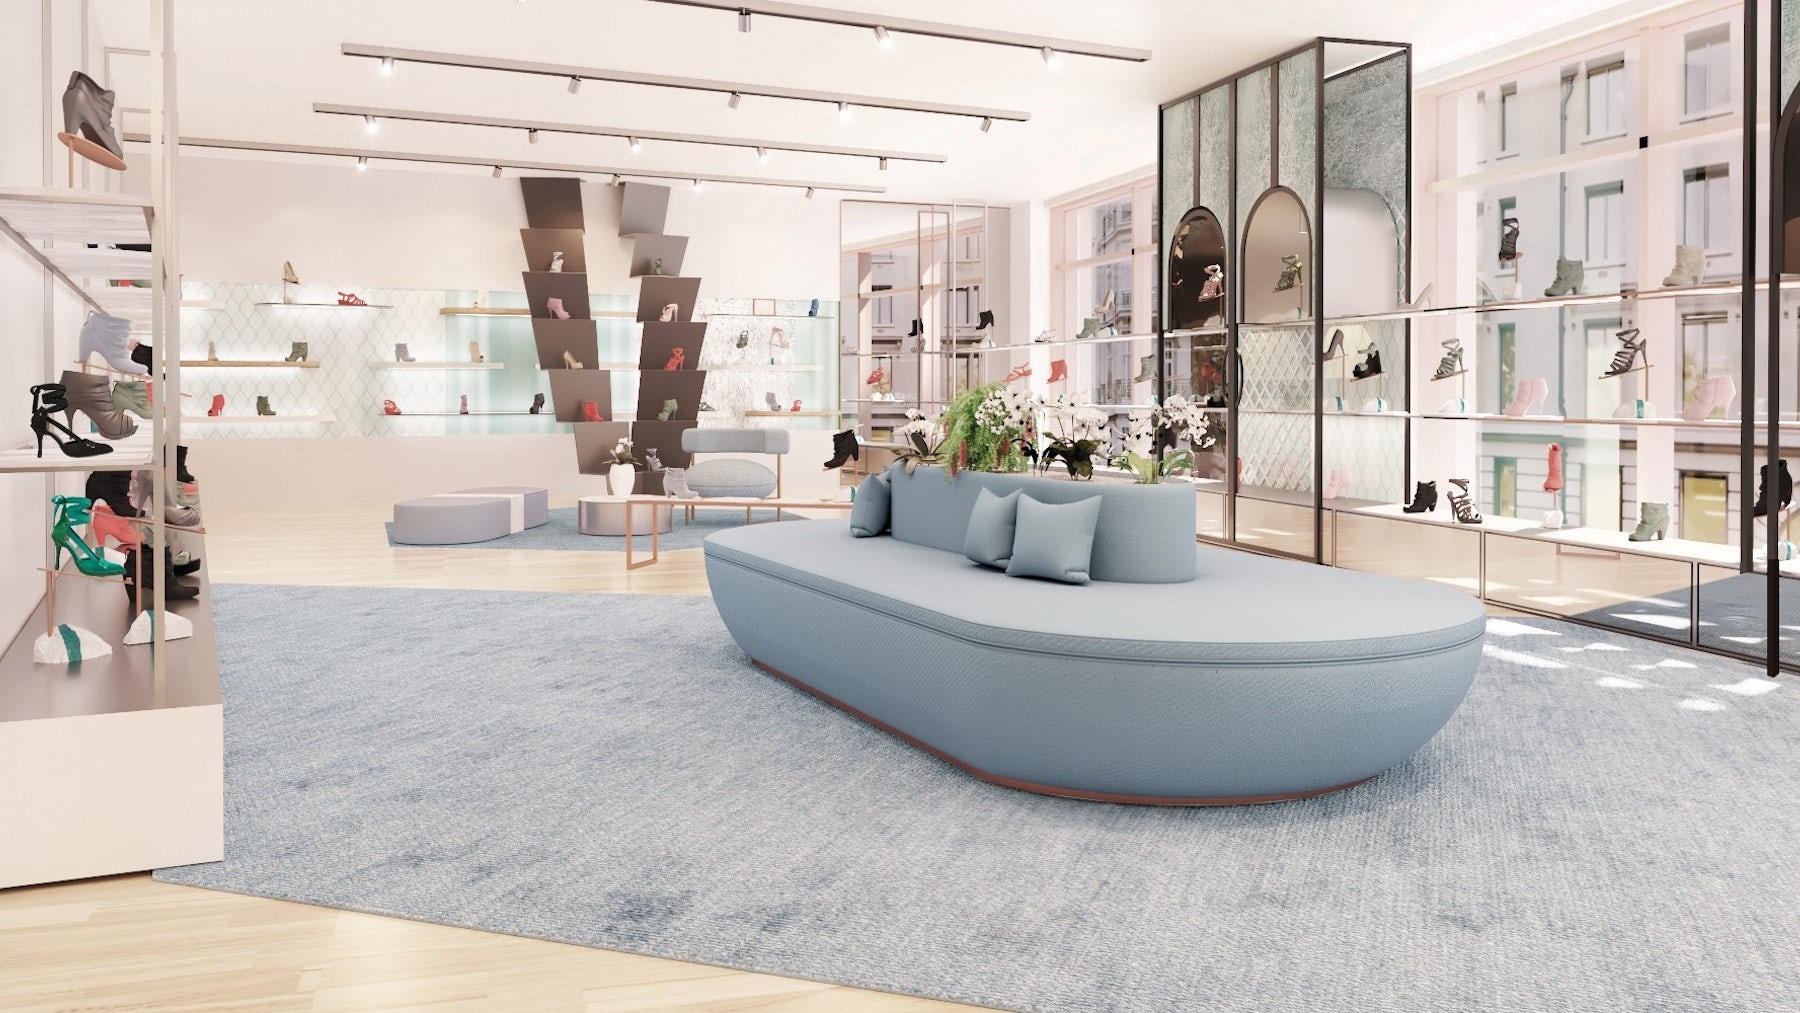 Harvey Nichols' newly renovated first floor | Source: Courtesy